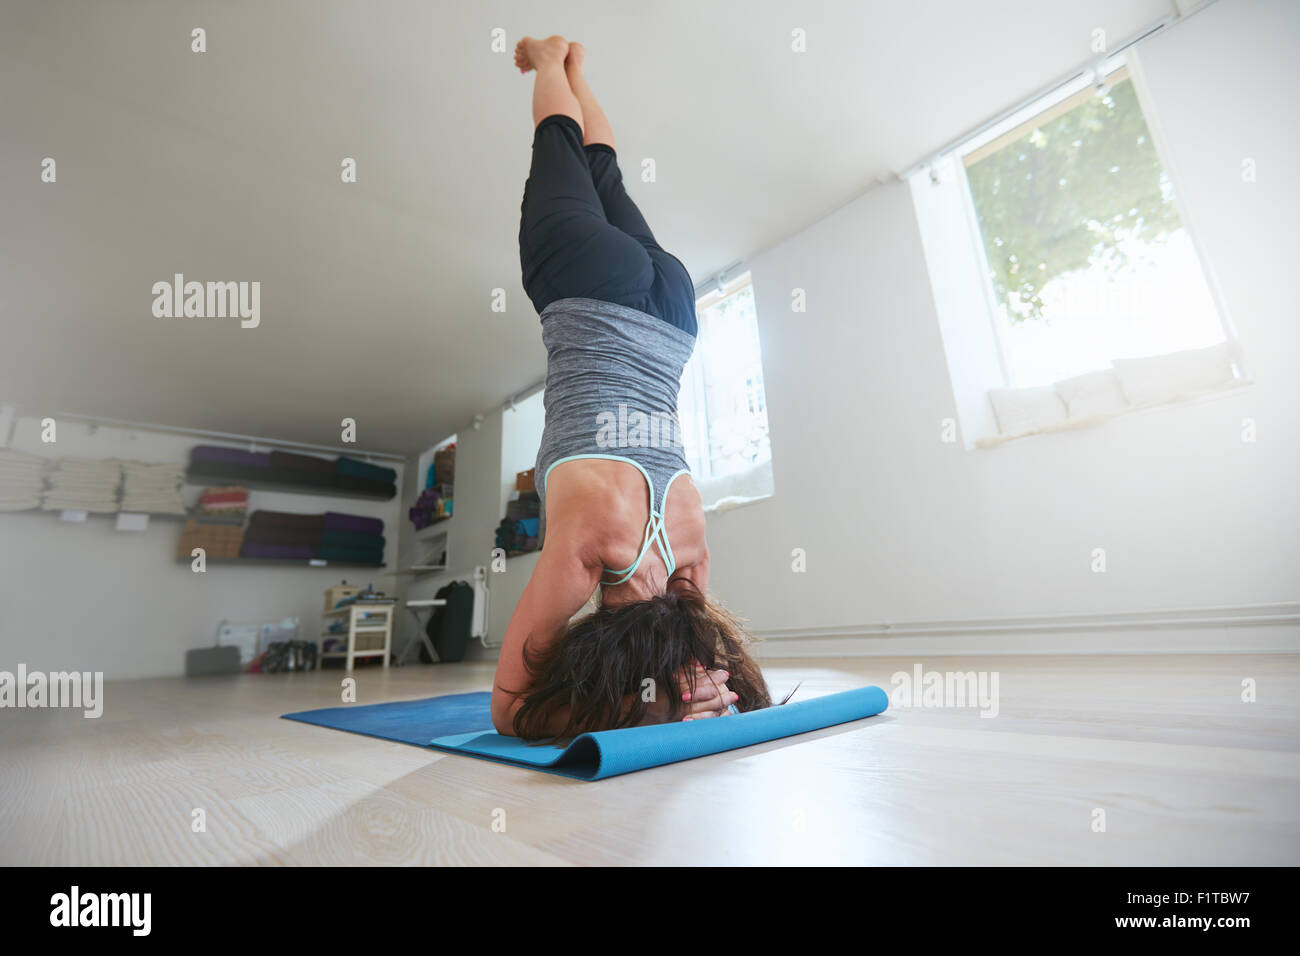 Sporty woman practice yoga, doing supported headstand yoga asana. Rear view of fitness female practicing Salamba - Stock Image